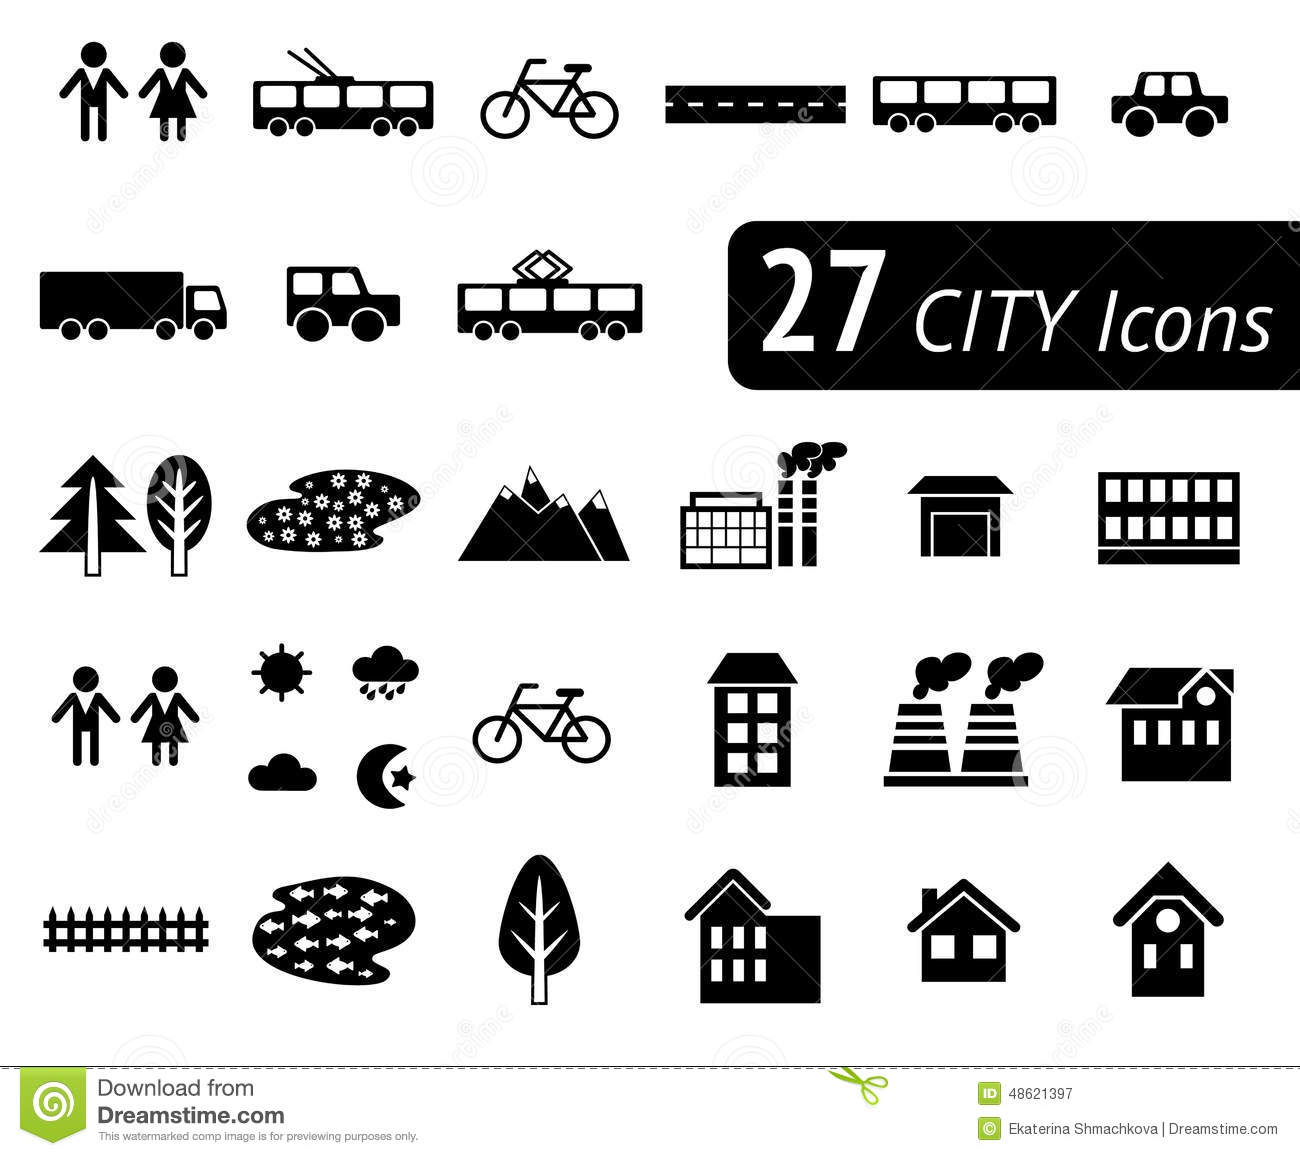 Web Site Map: Different Monochromatic Flat City Elements For Creating Your Own Map. Vector Infographic Stock